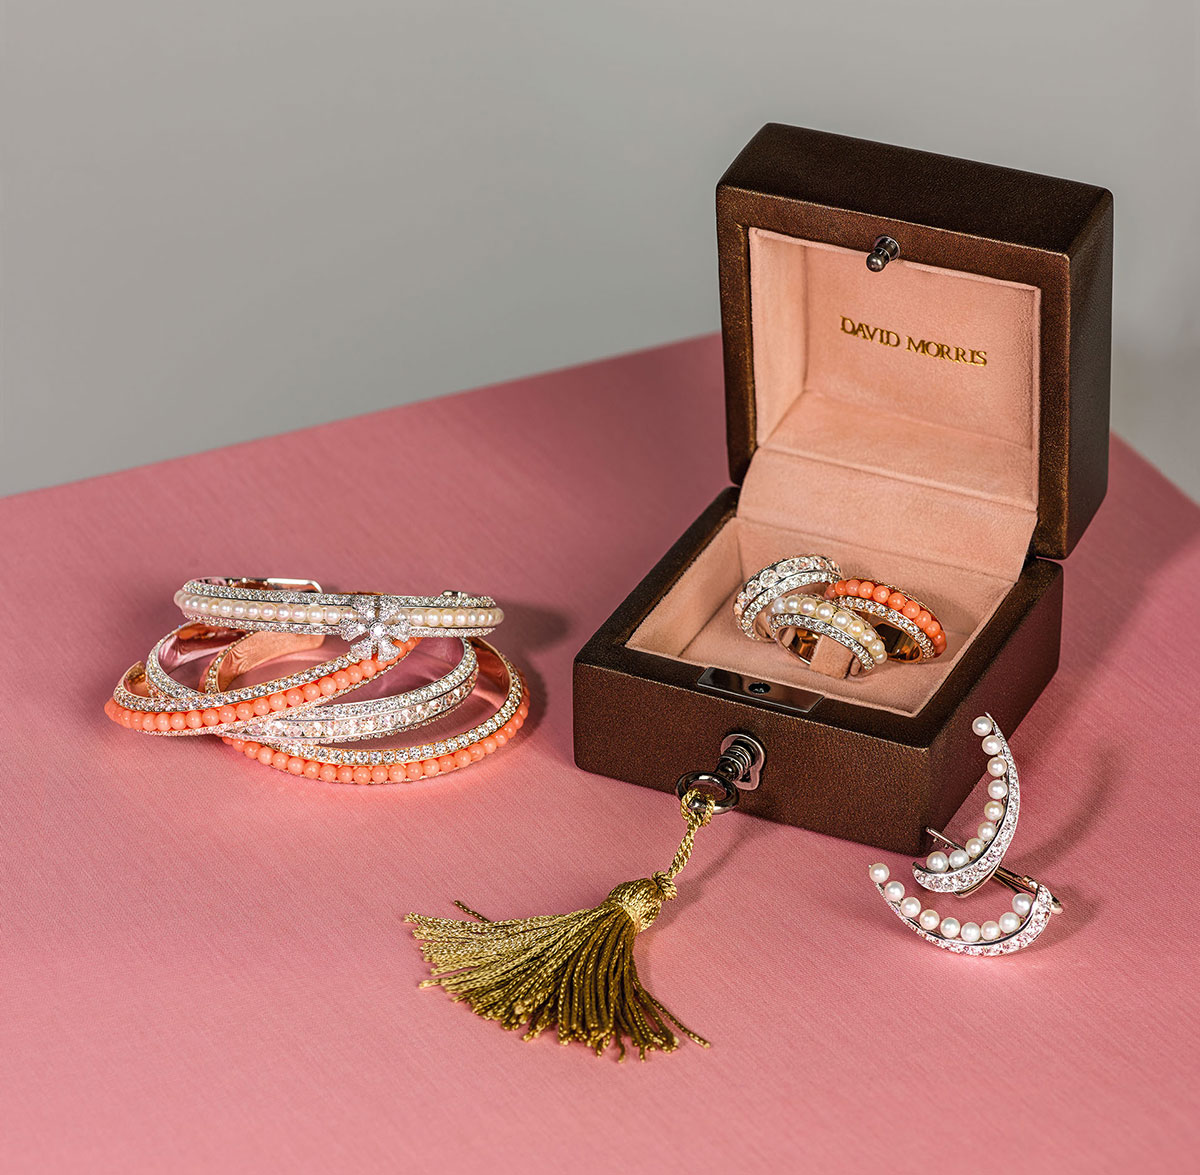 The new Pearl Rose collection by David Morris